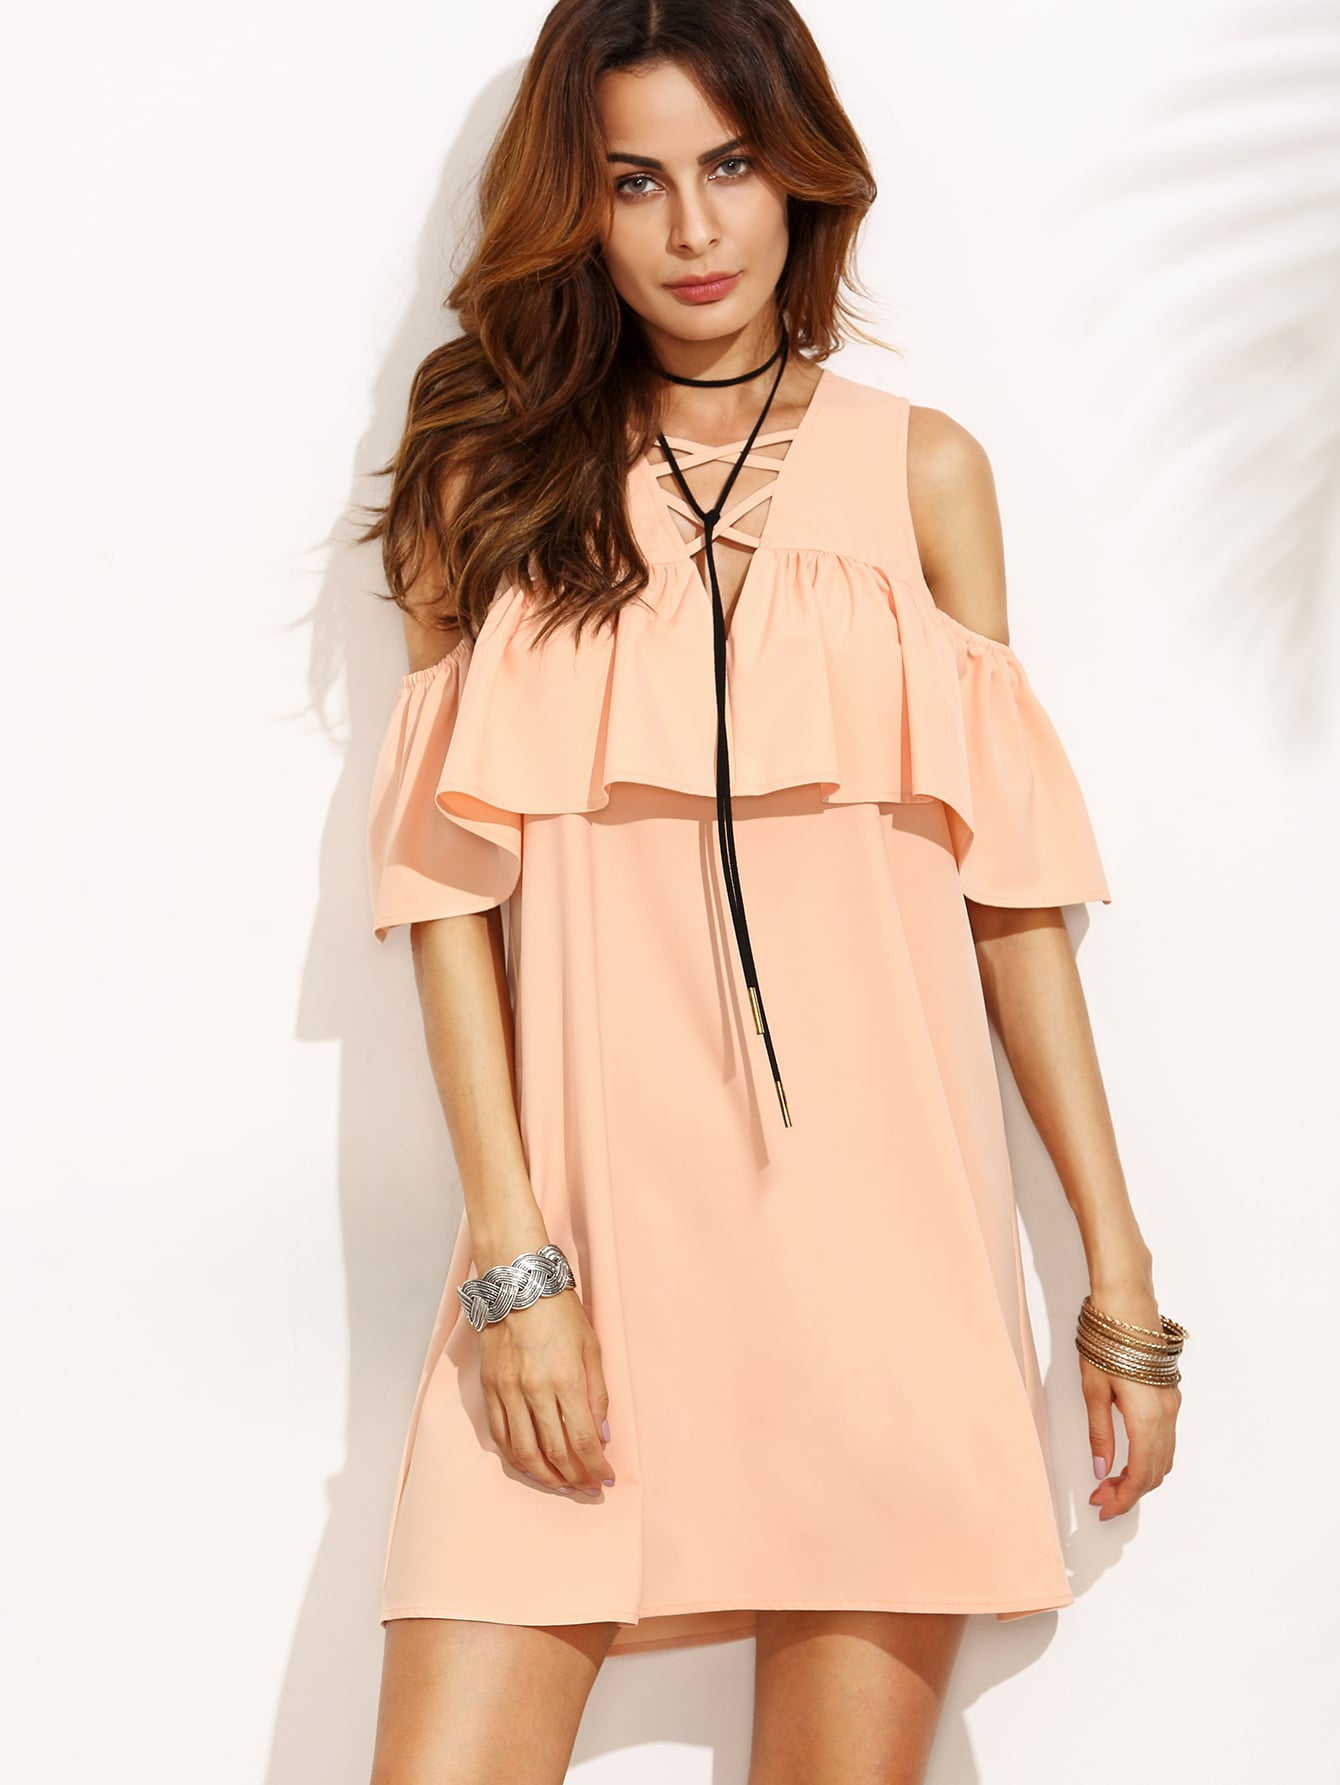 Pink Cold Shoulder Ruffle Criss Cross V Neck Dress dress160802506